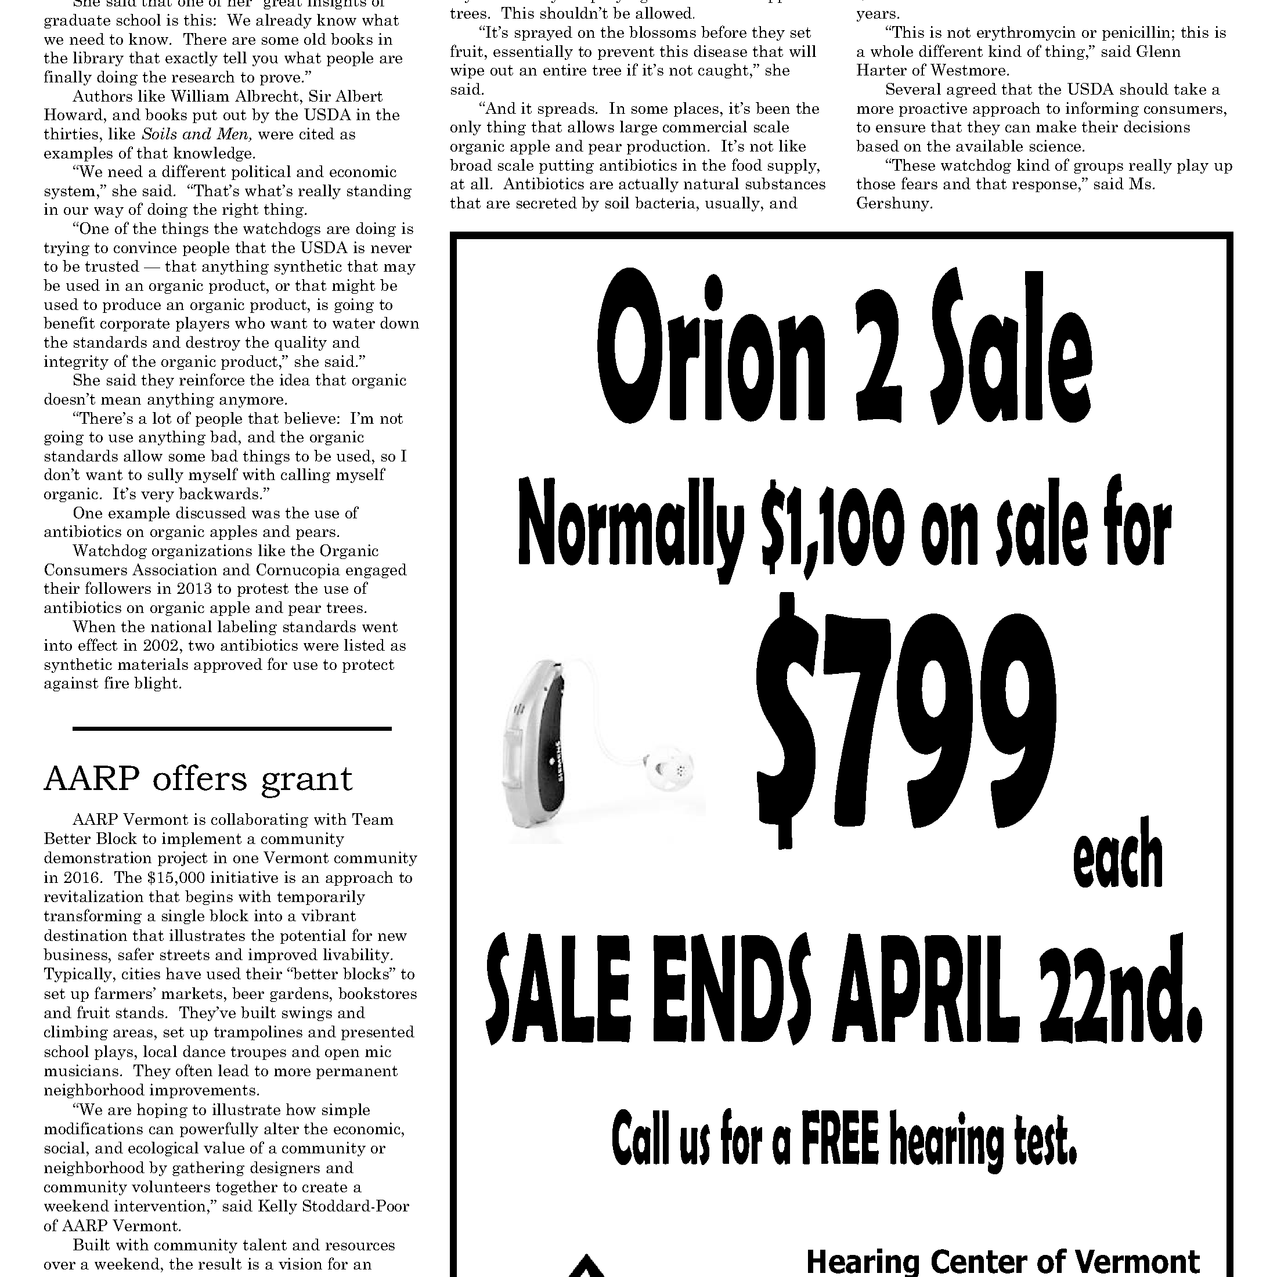 Barton Chronicle 4-13-16-pp12-15_2